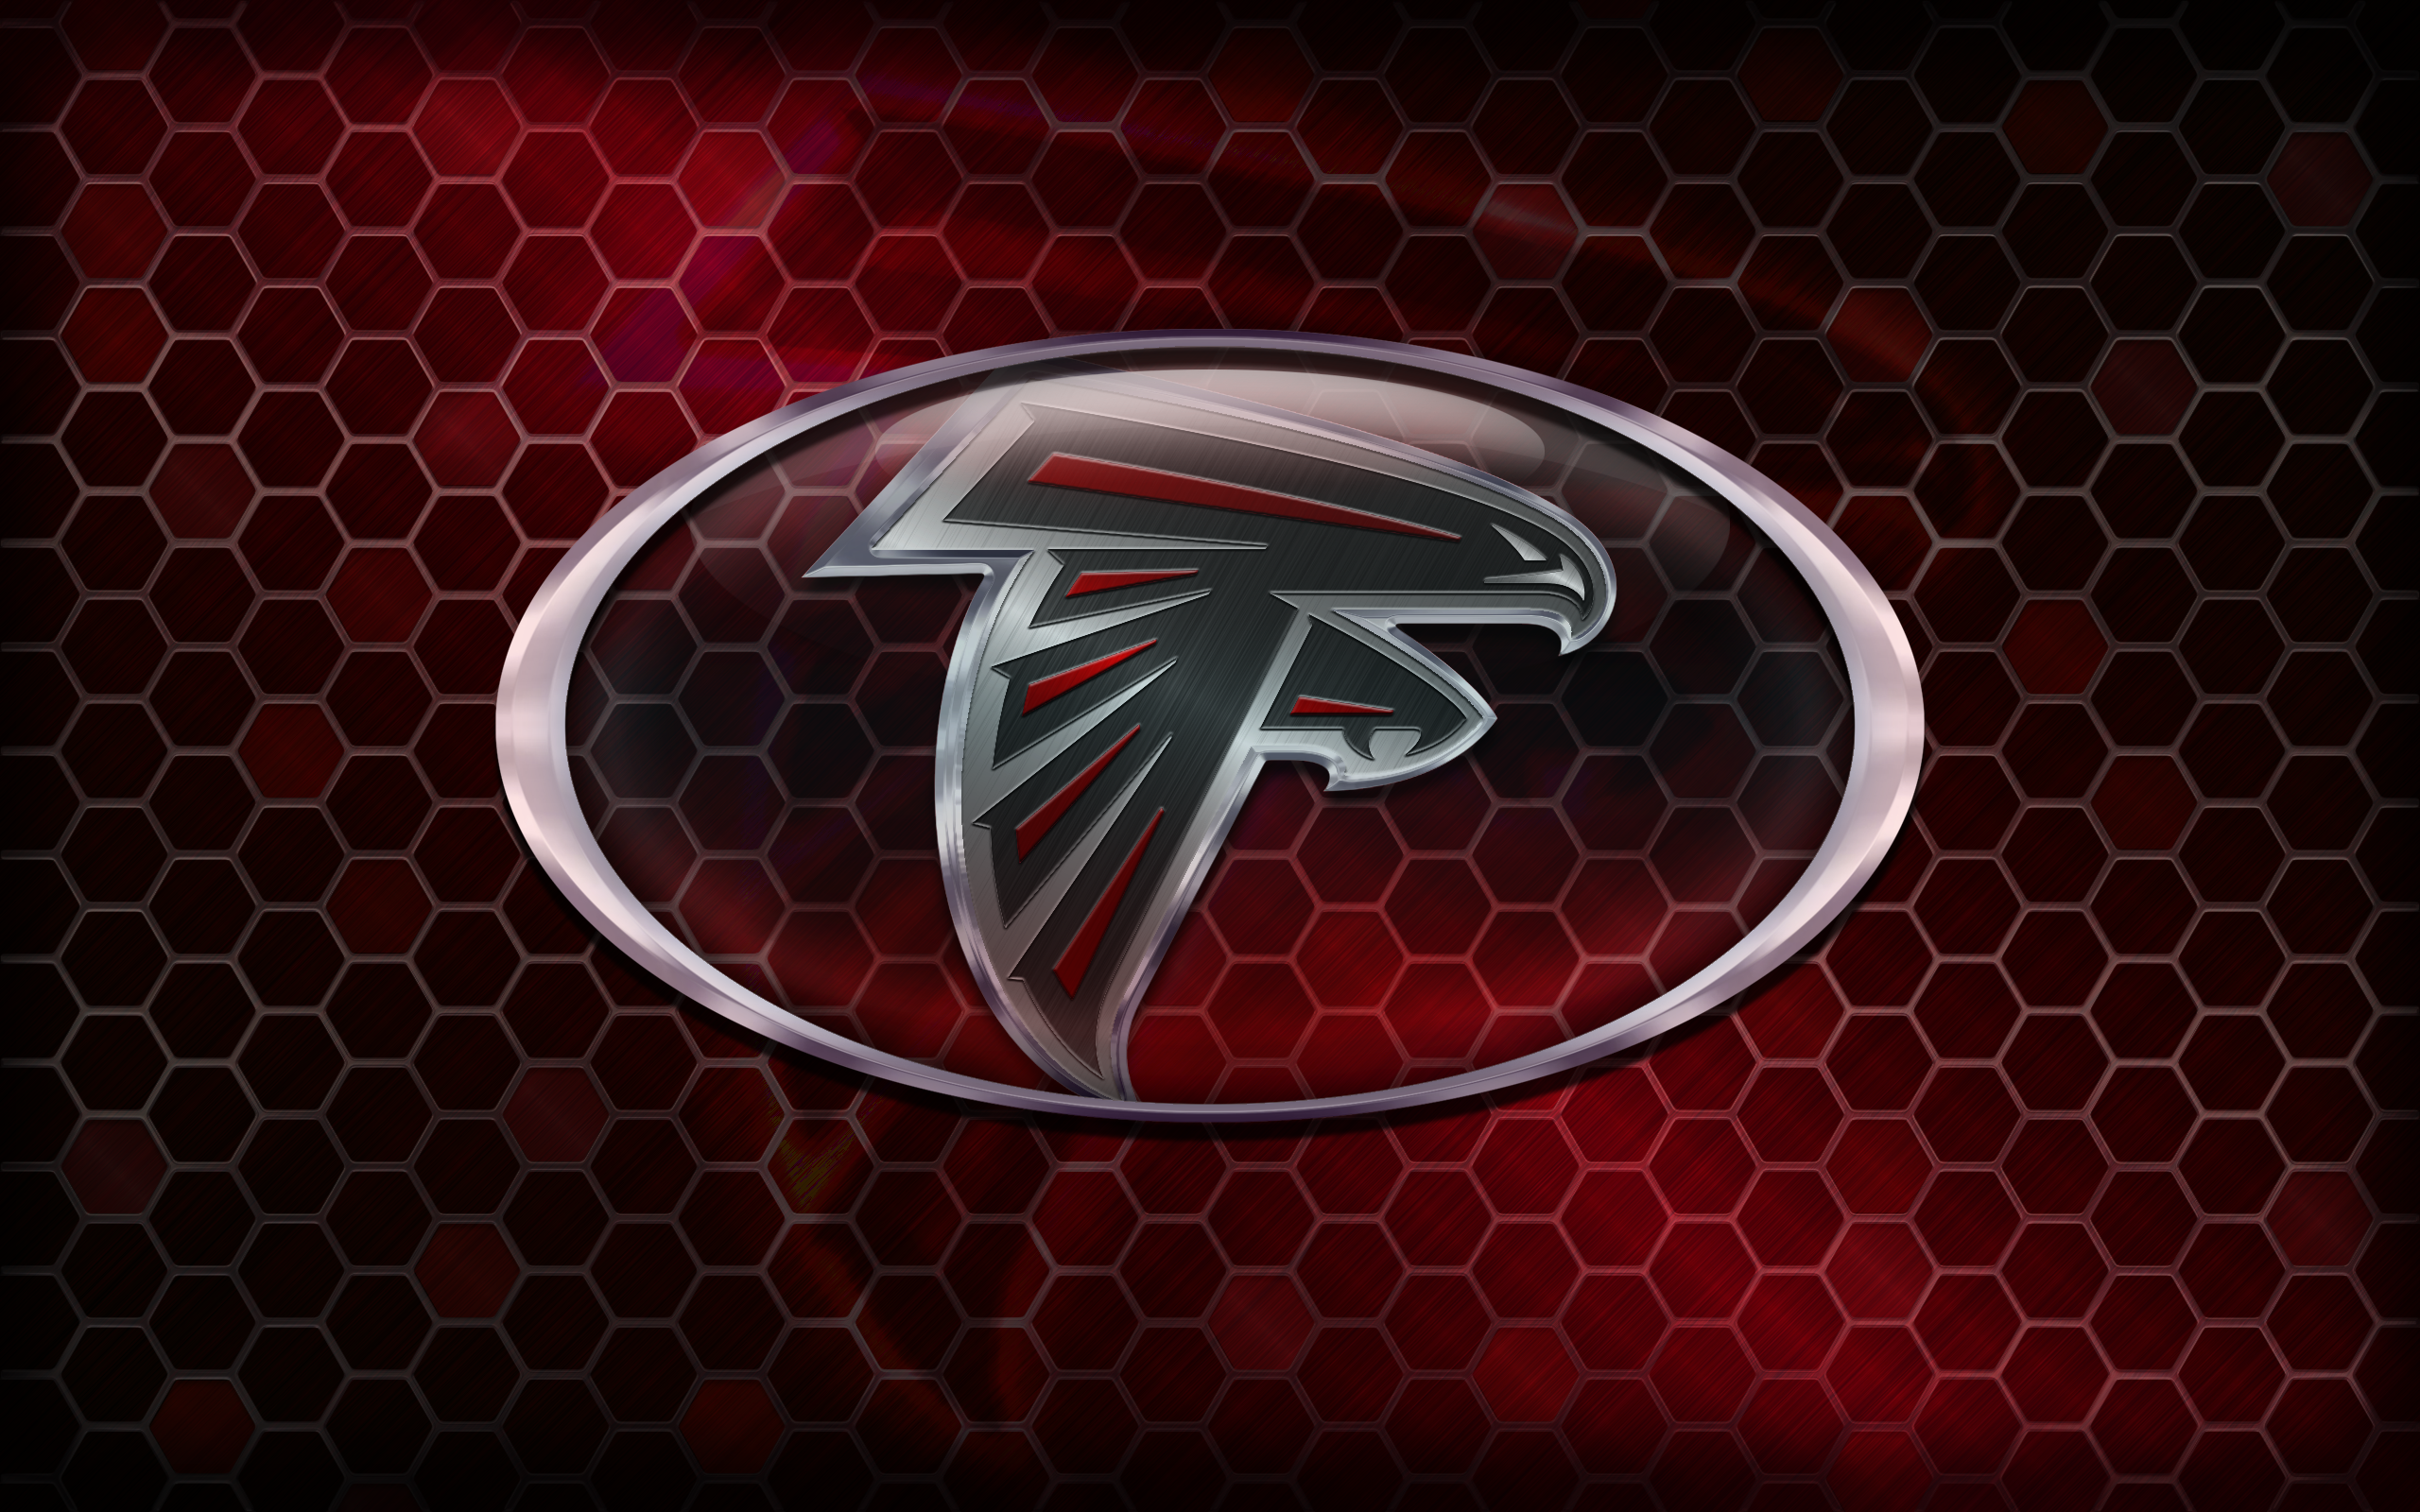 Falcons Wallpaper 14640 2560x1600 px